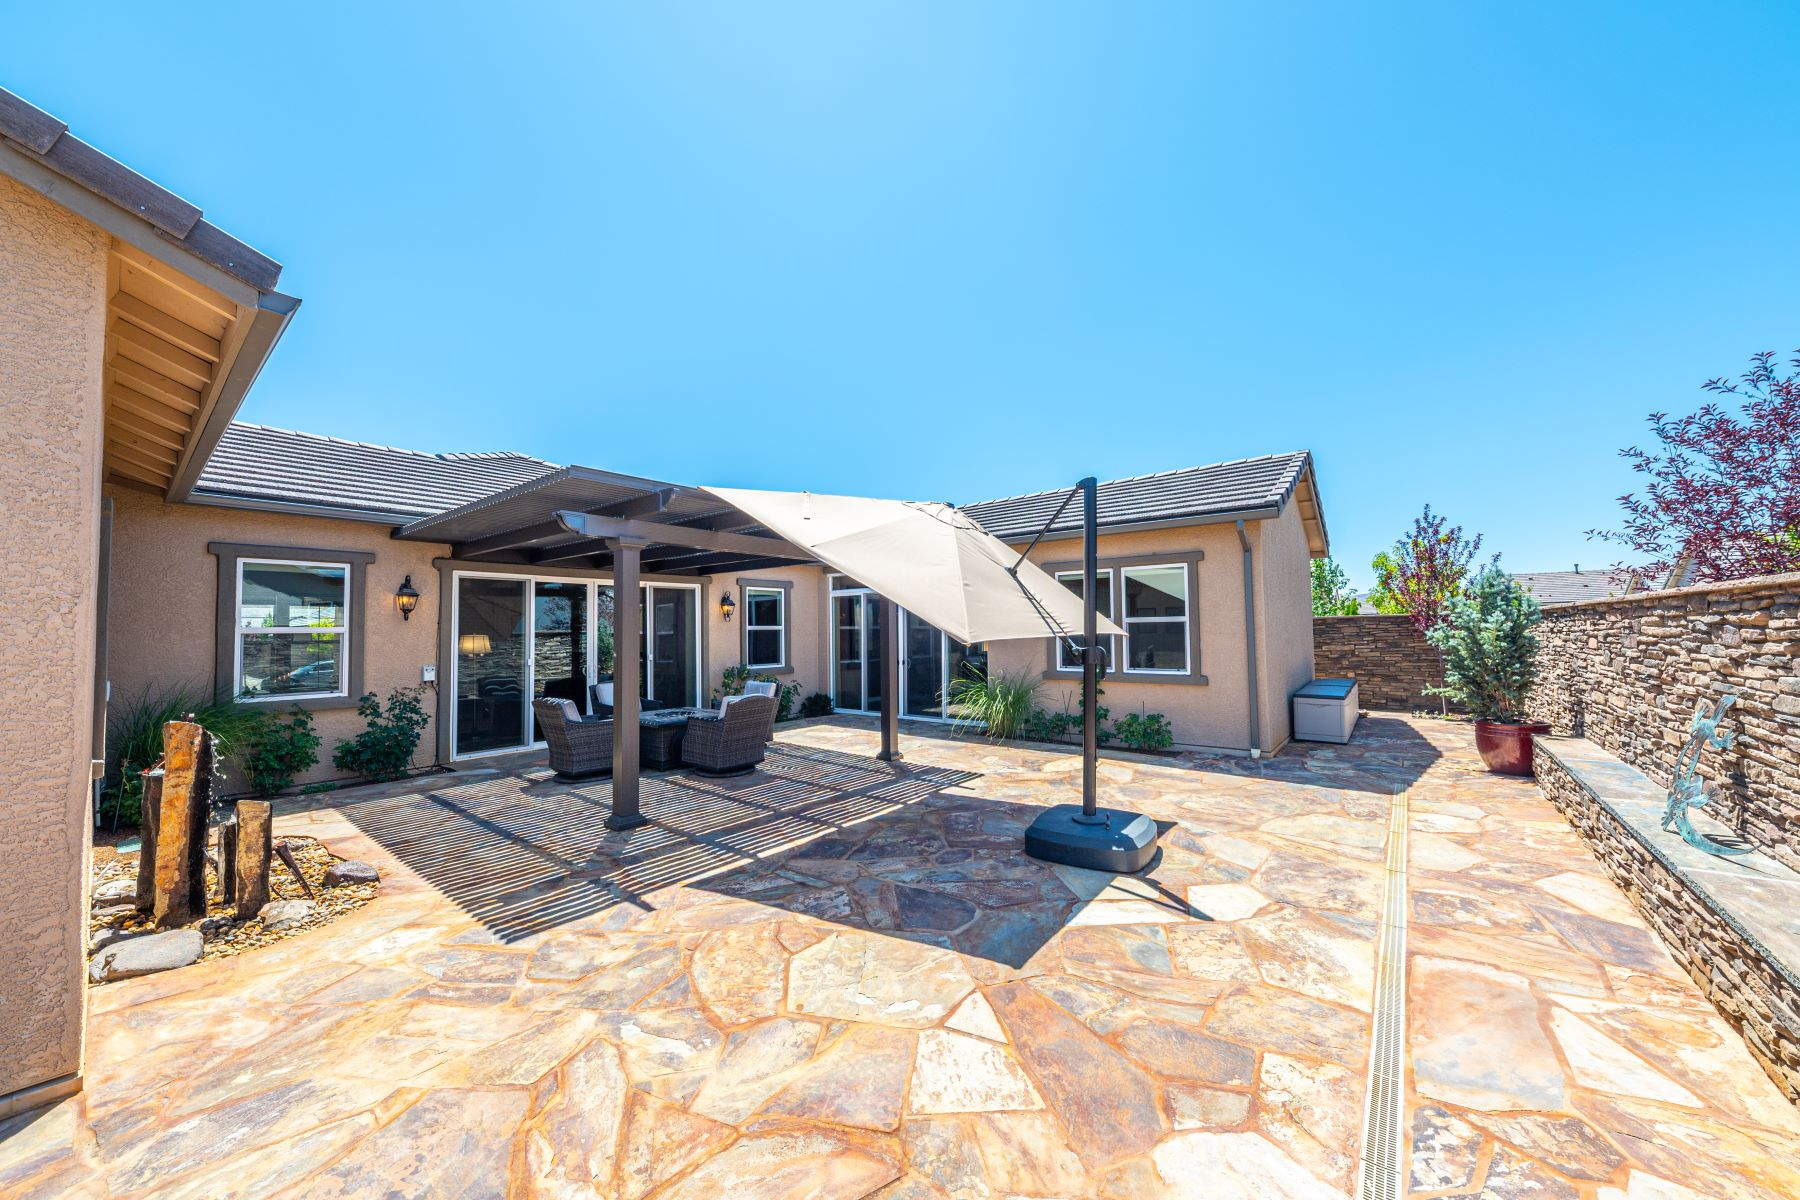 Additional photo for property listing at Regency at Damonte Ranch 9845 Shadowless Trail Reno, Nevada 89521 United States